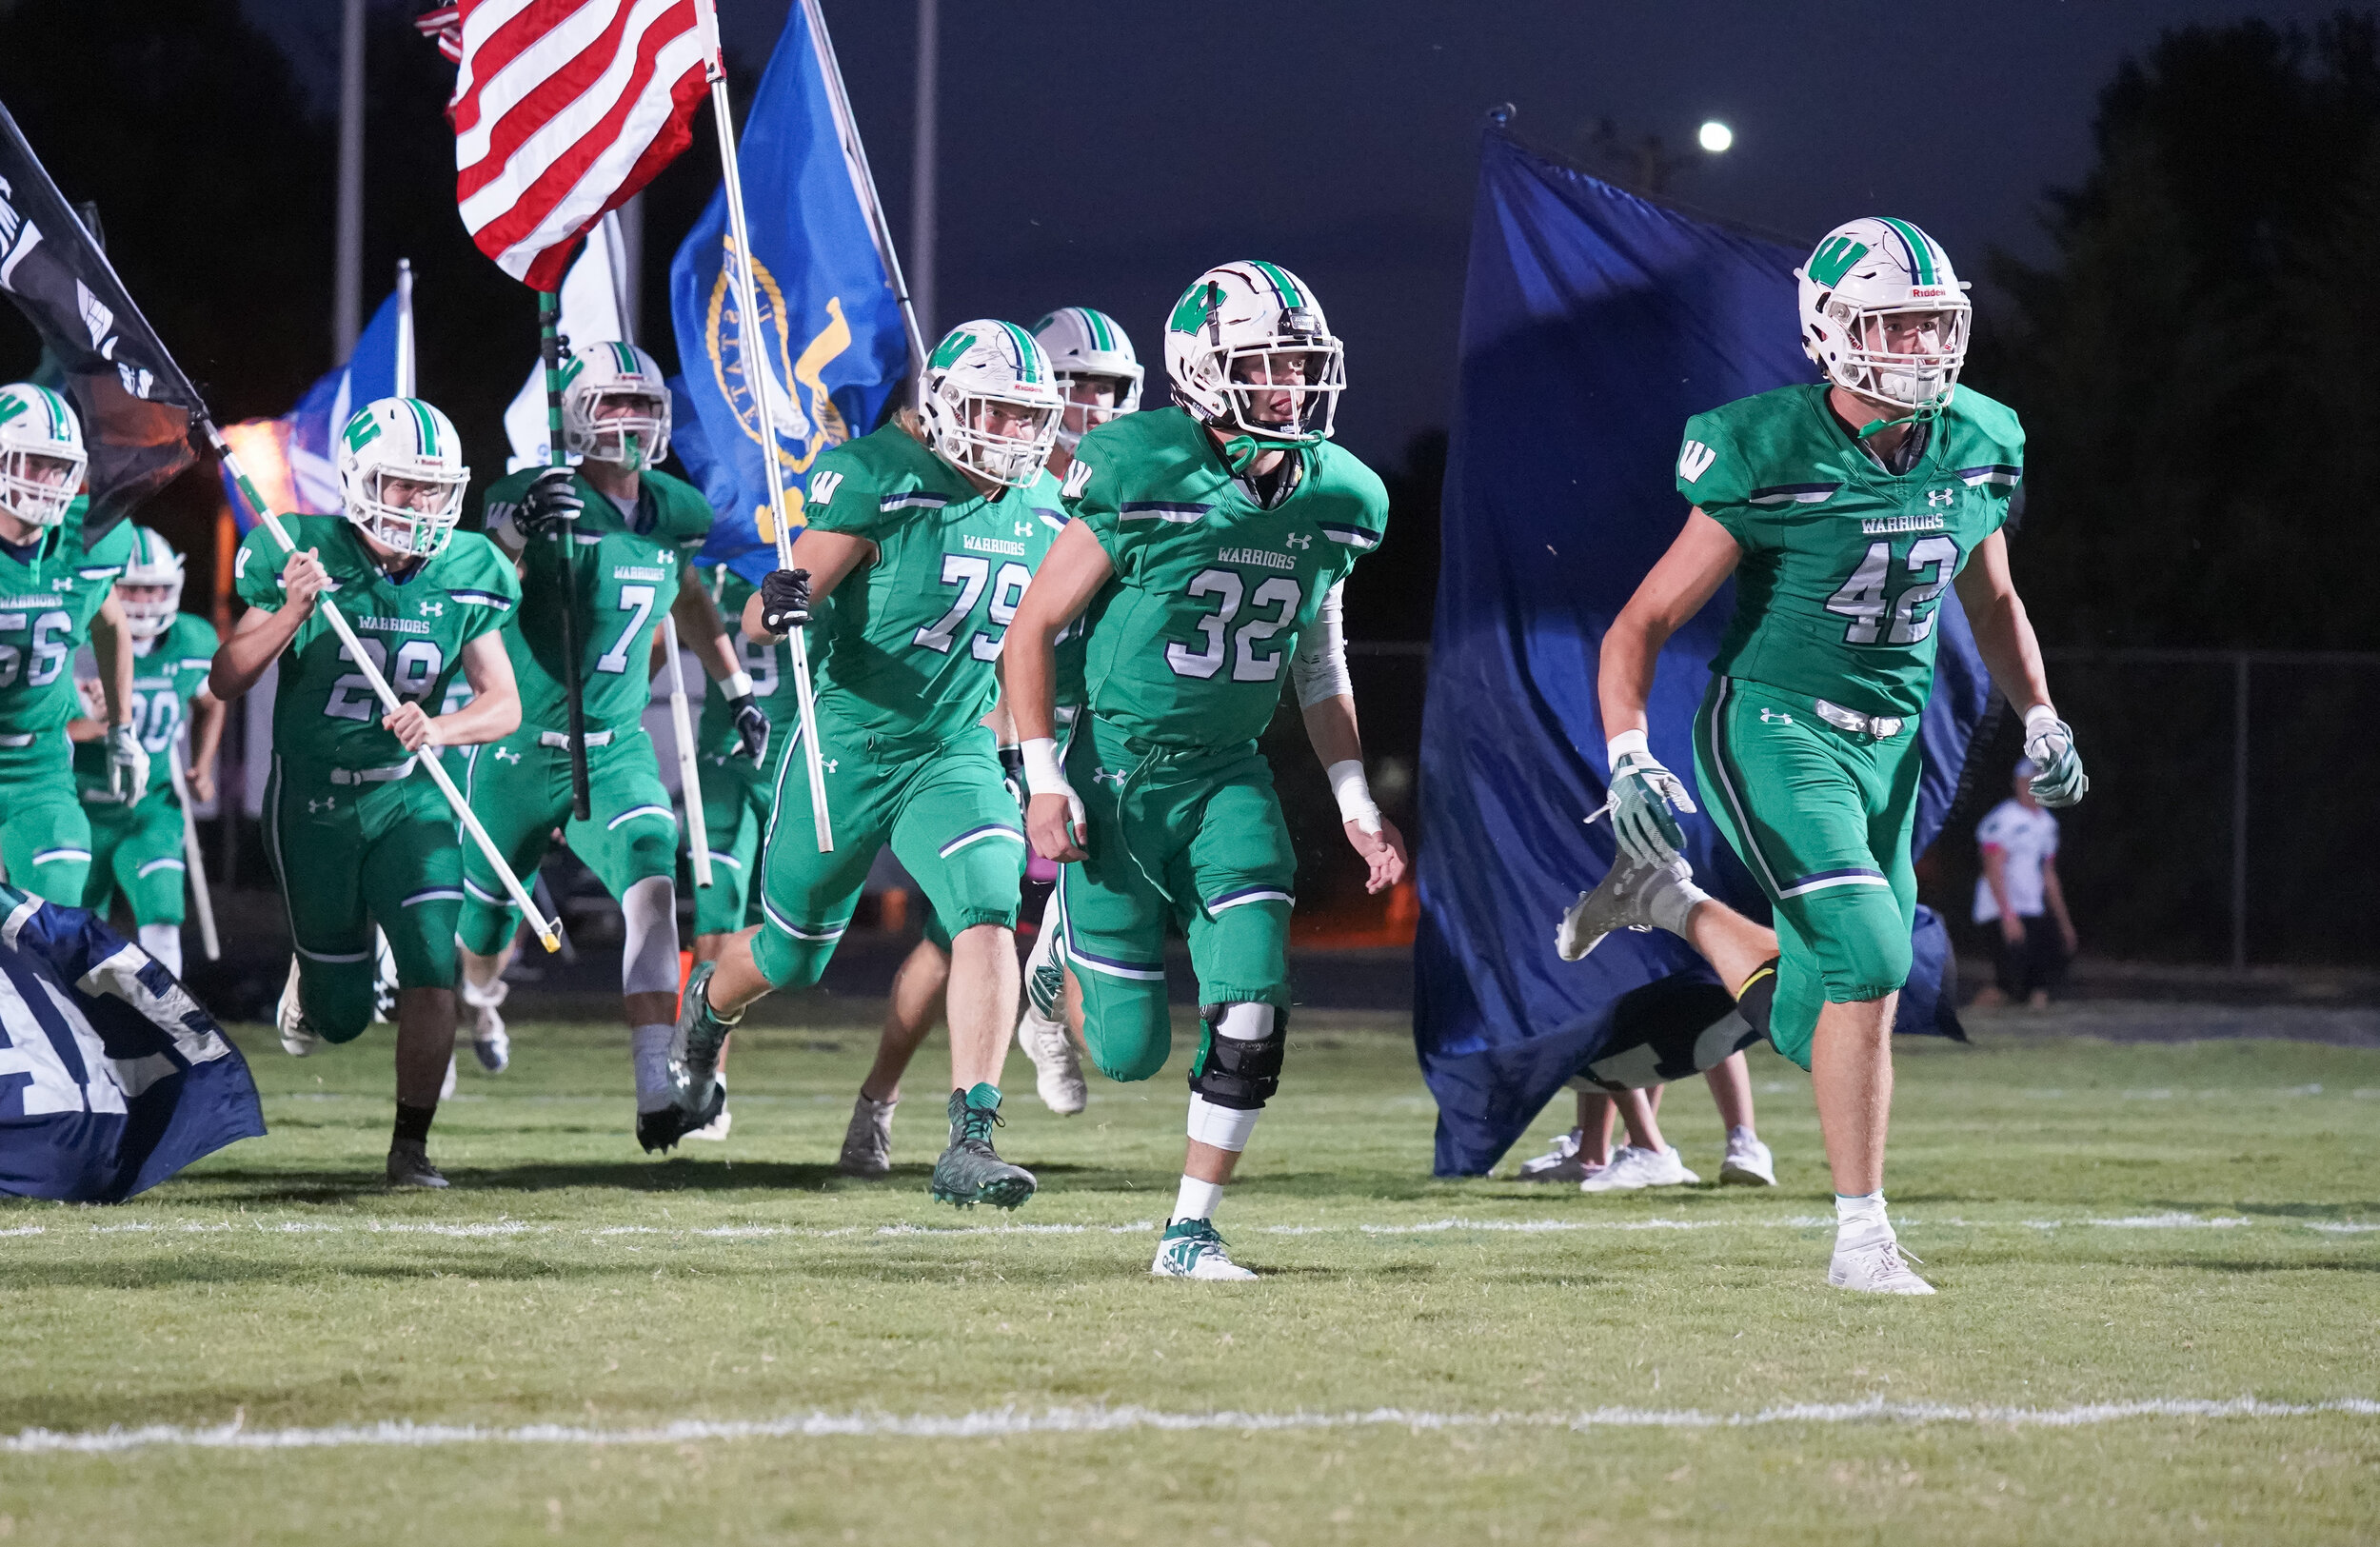 The 5-0 Weddington Warriors take the field in front of a packed house.